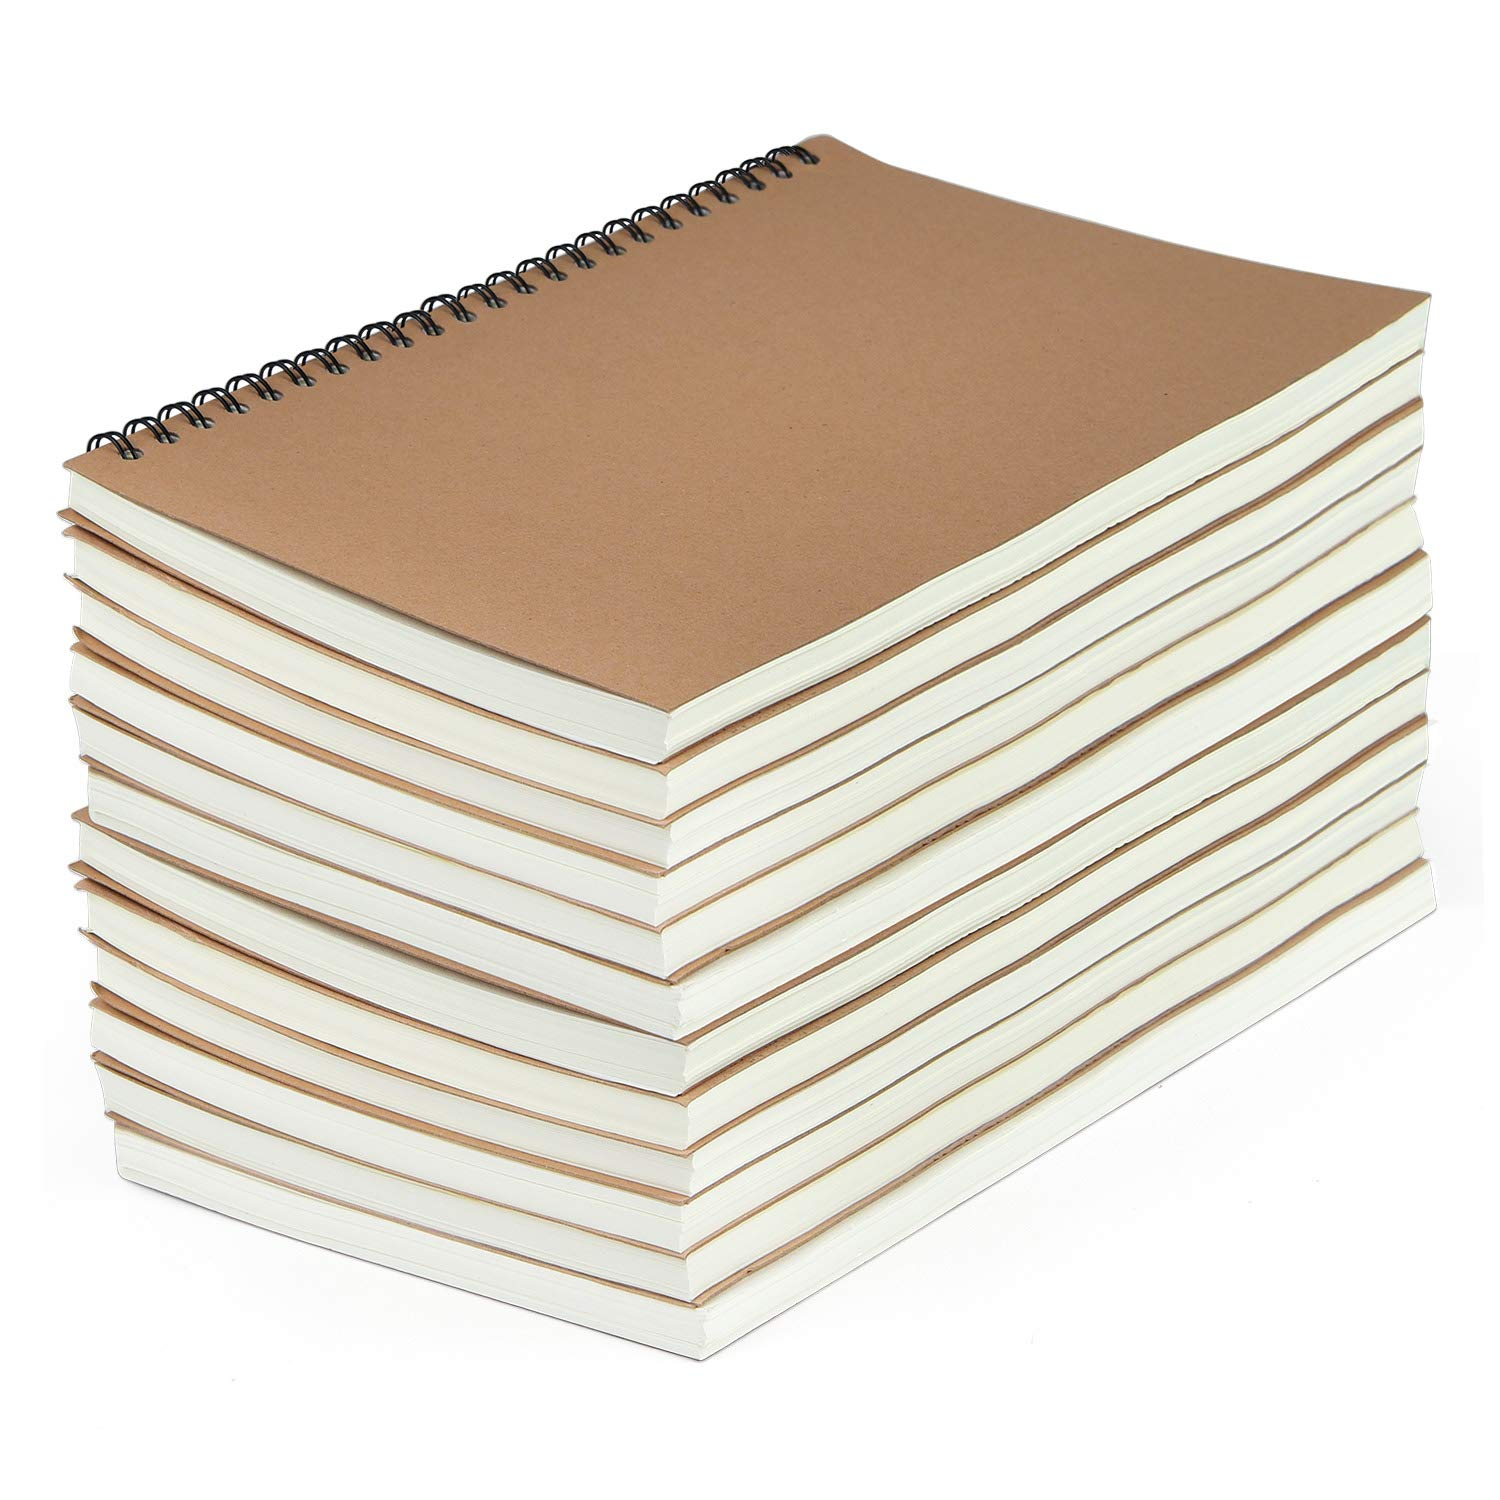 SAYAYA 12 Pack Kraft Cover Wirebound Notebooks Bulk Journals Spiral Steno Pads with Lined Paper Brown Spiral Notebooks with 120 Pages 60 Sheets Memo Notepads for Home School Travel, 8.3 x 5.5 inch by SAYAYA